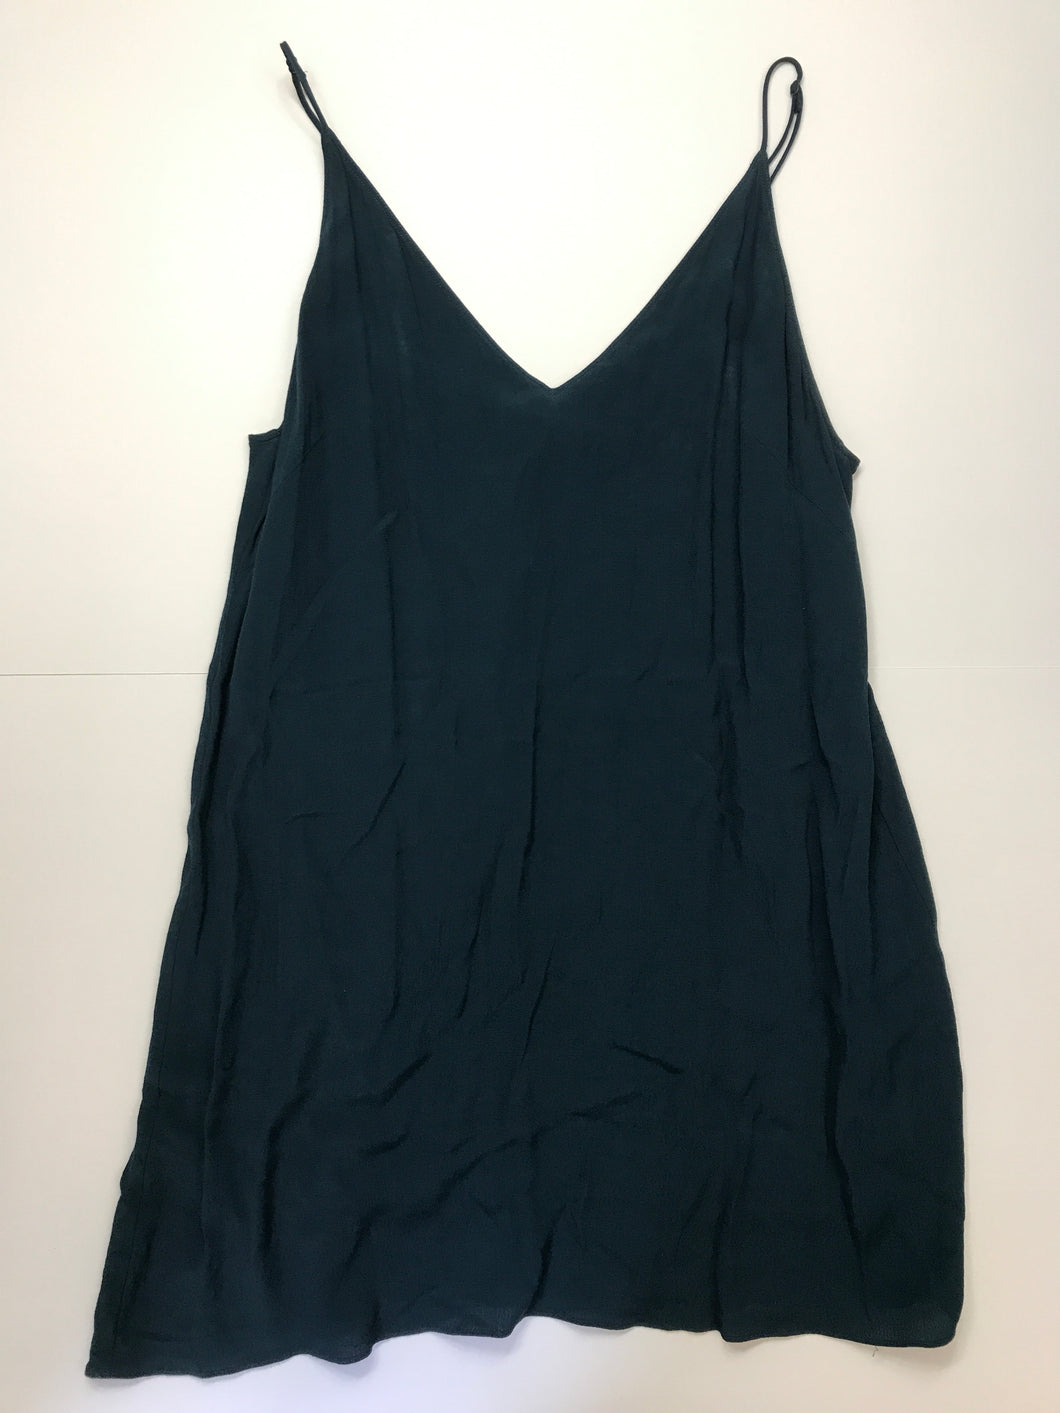 Gently Used Women's Wilfred Dress Size L